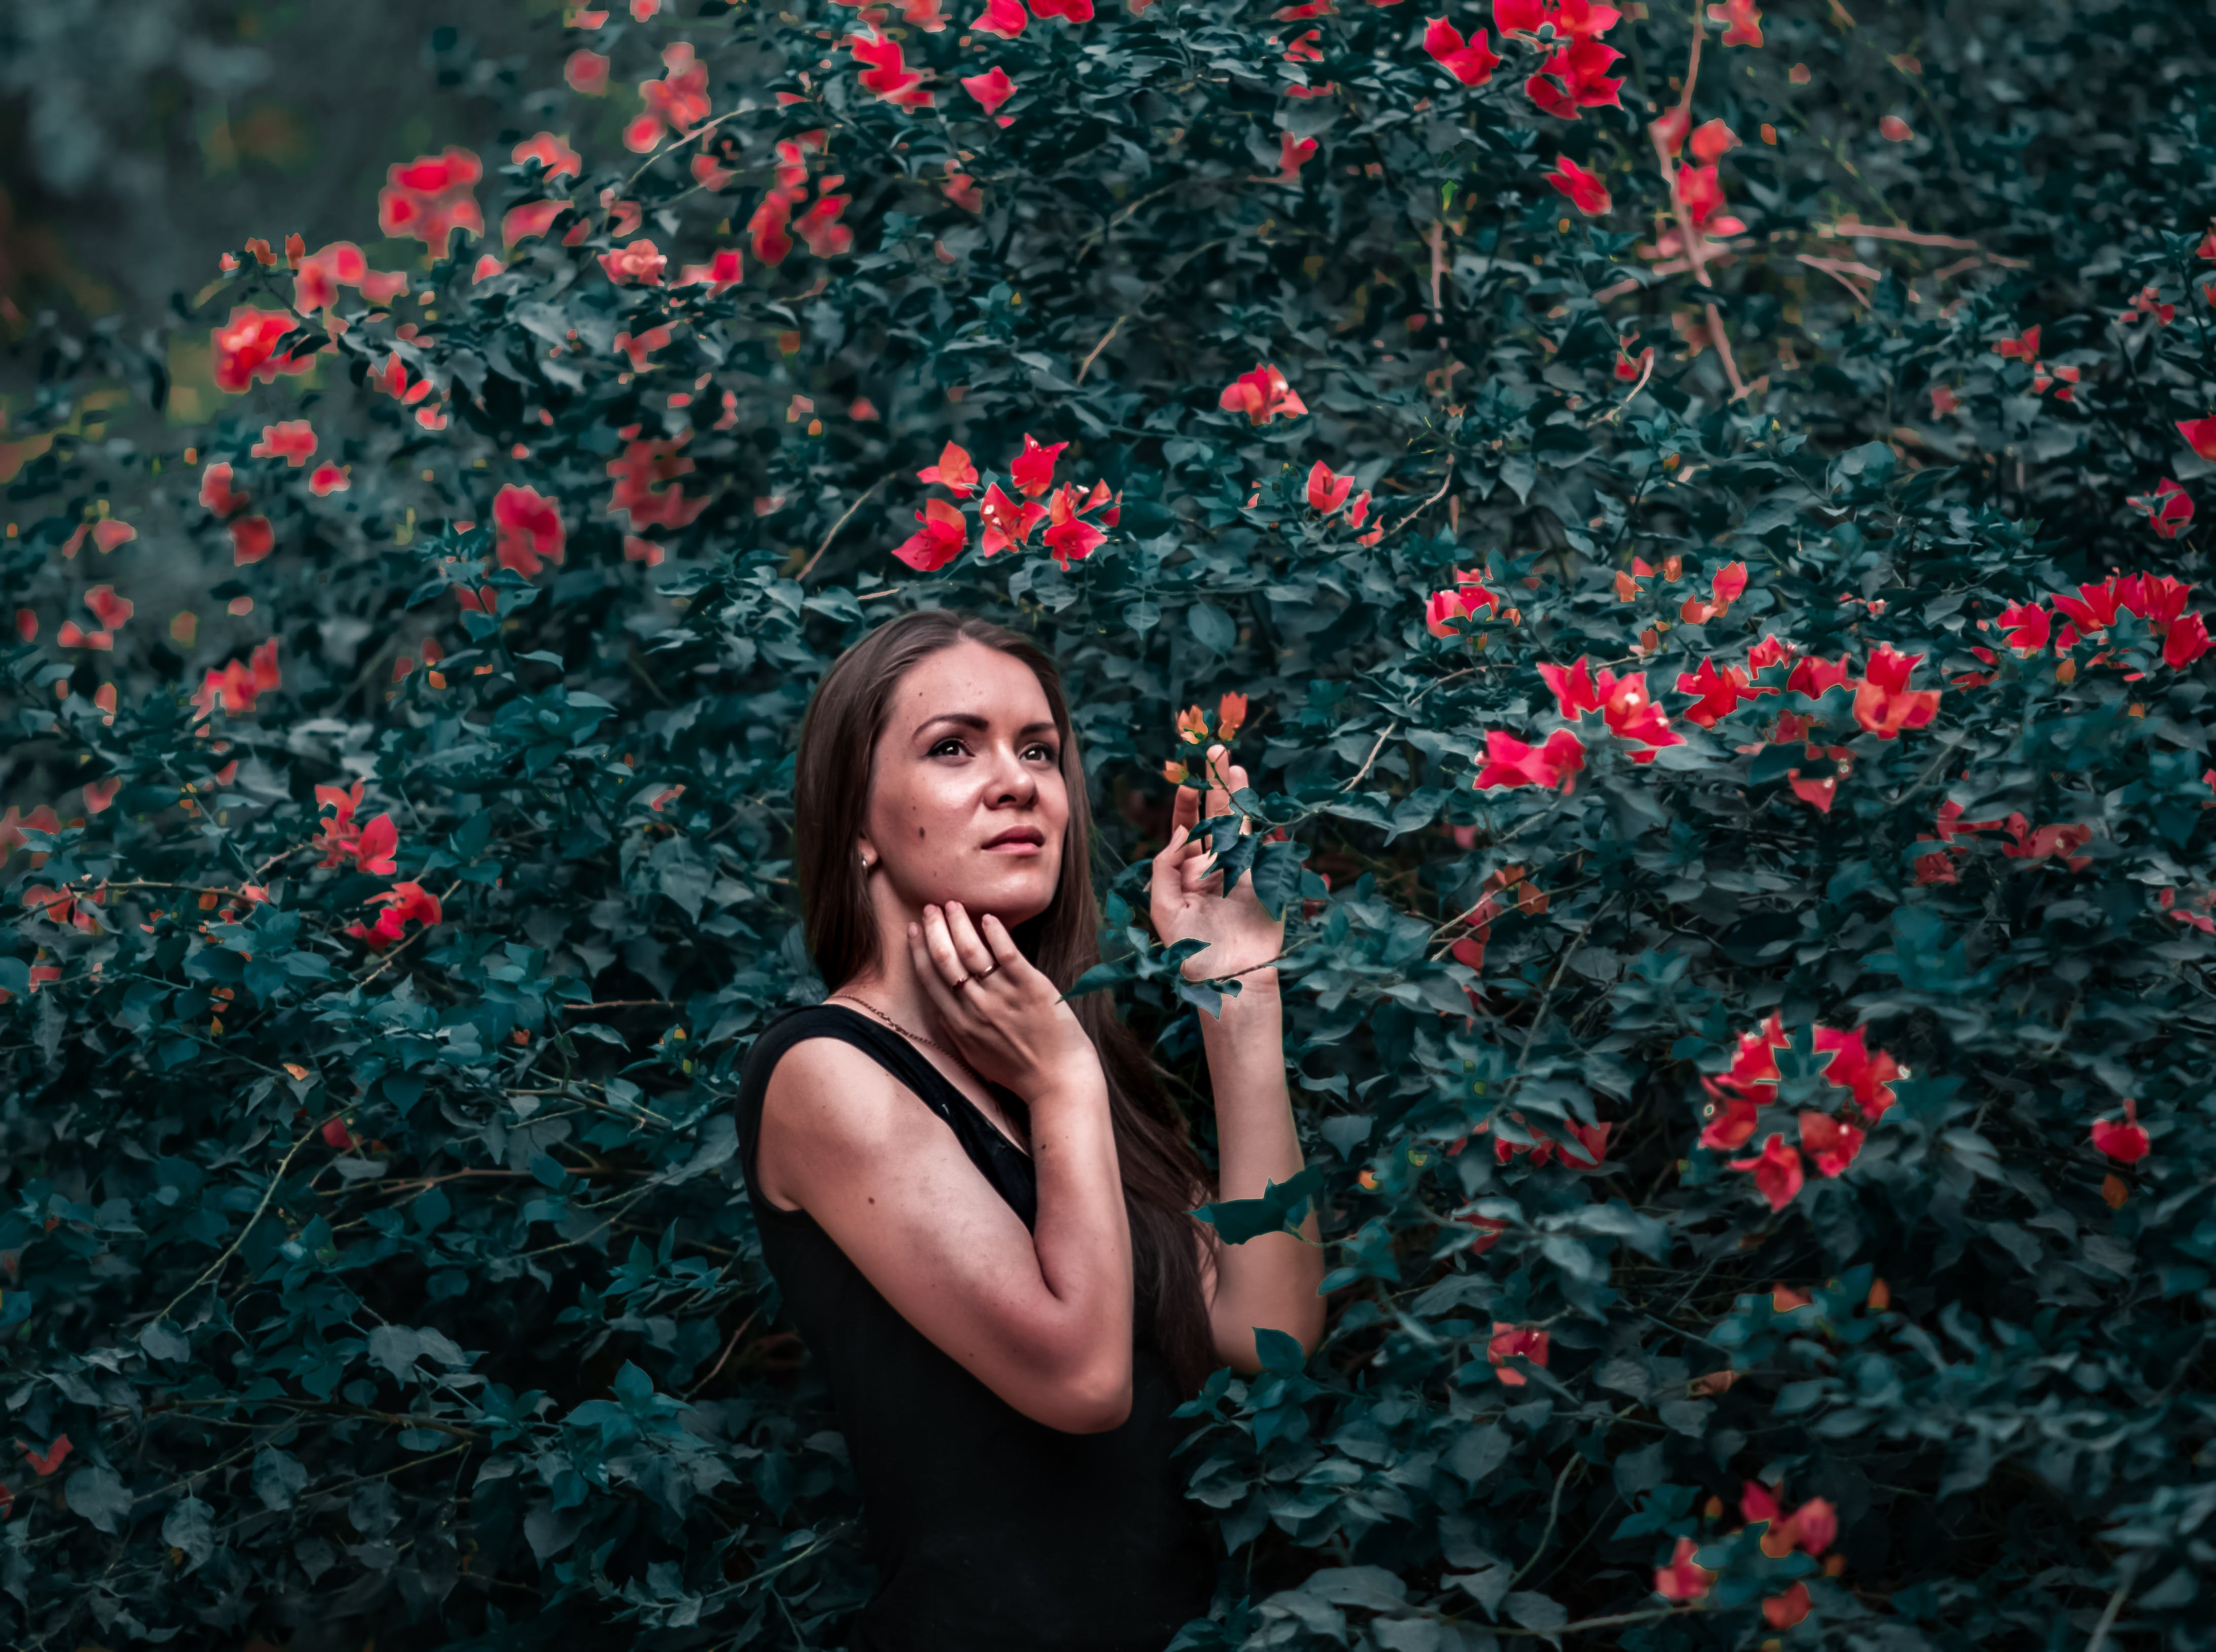 Woman Holding Red Petal Flower in Shallow Focus Photography